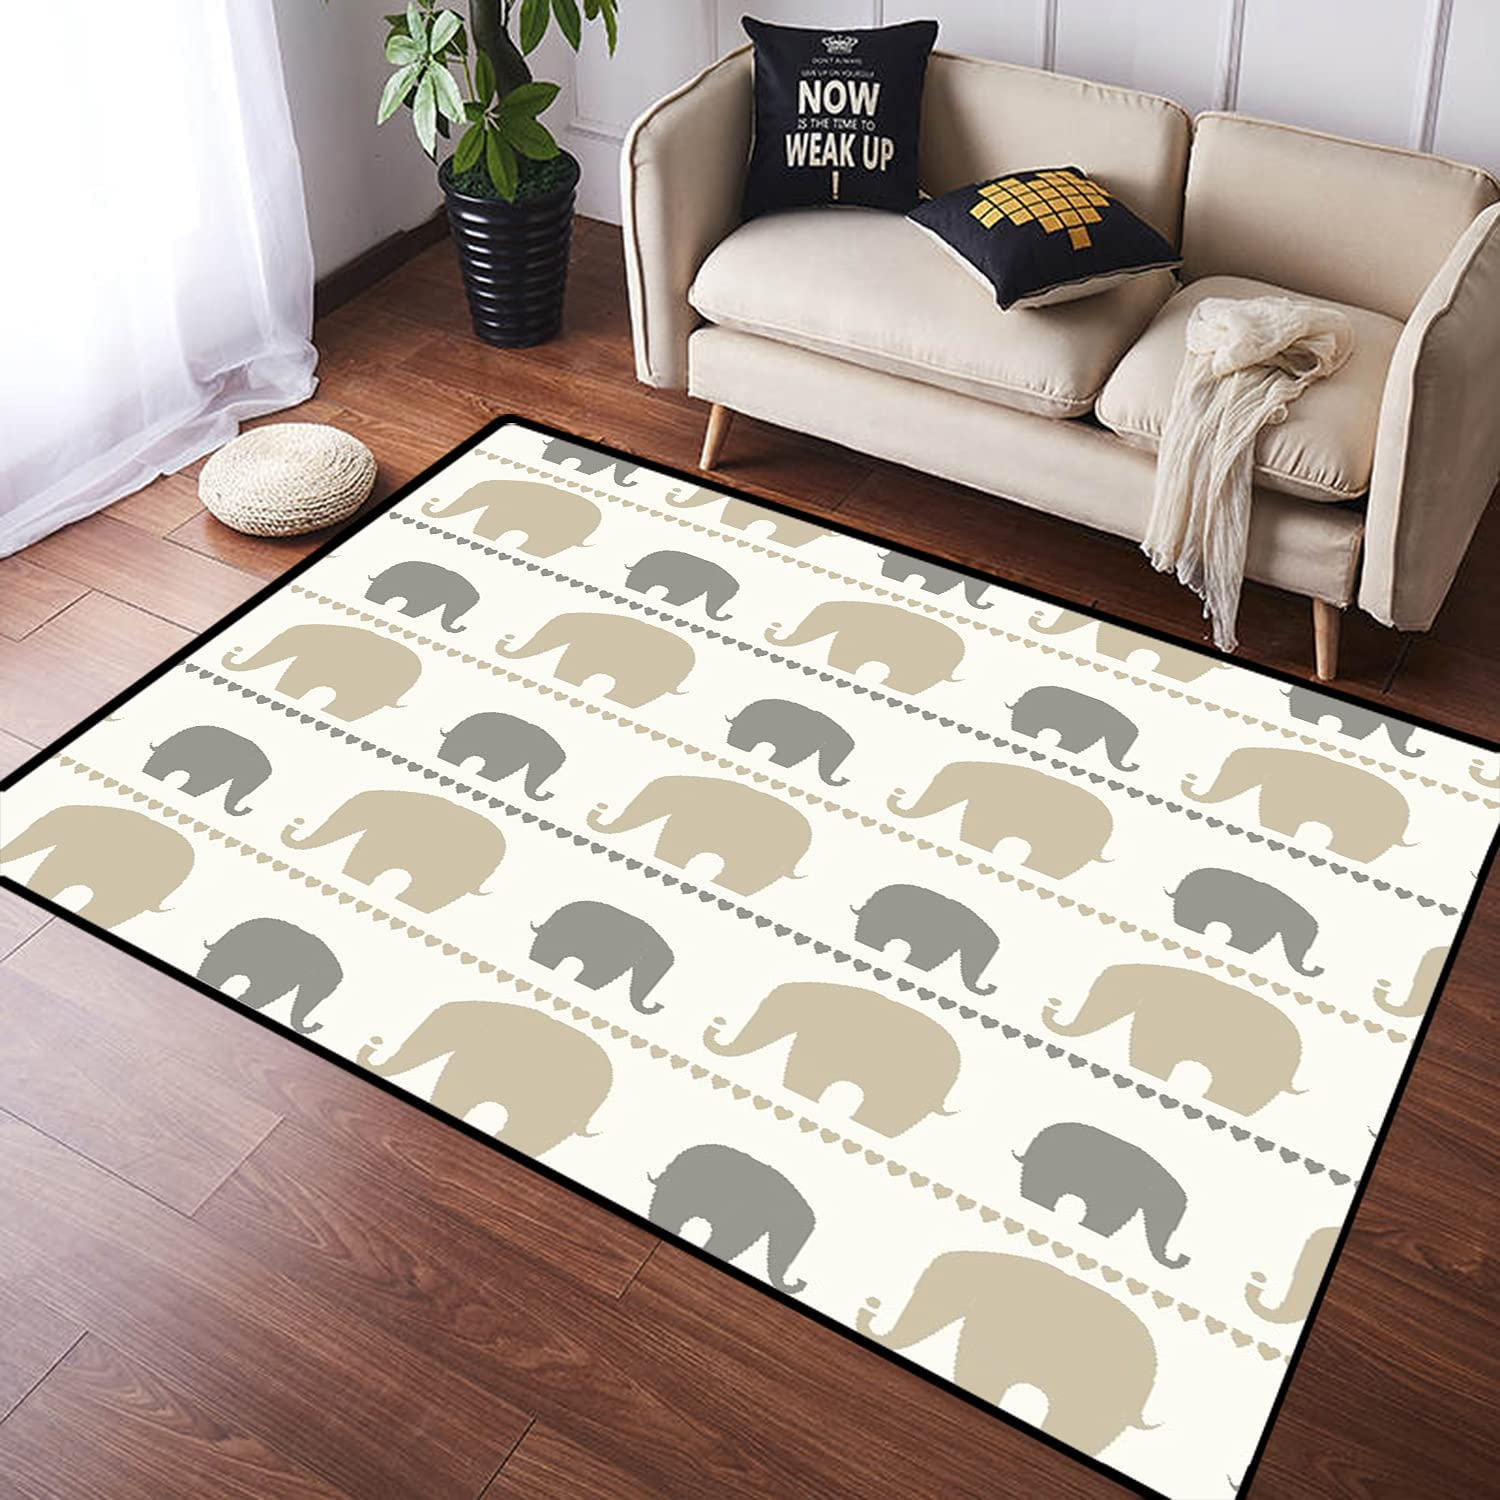 ZOMOY Long Floor Mat Limited time for free shipping Carpet Fashionable Absorbent Cute Non-Slip Elephant Ind